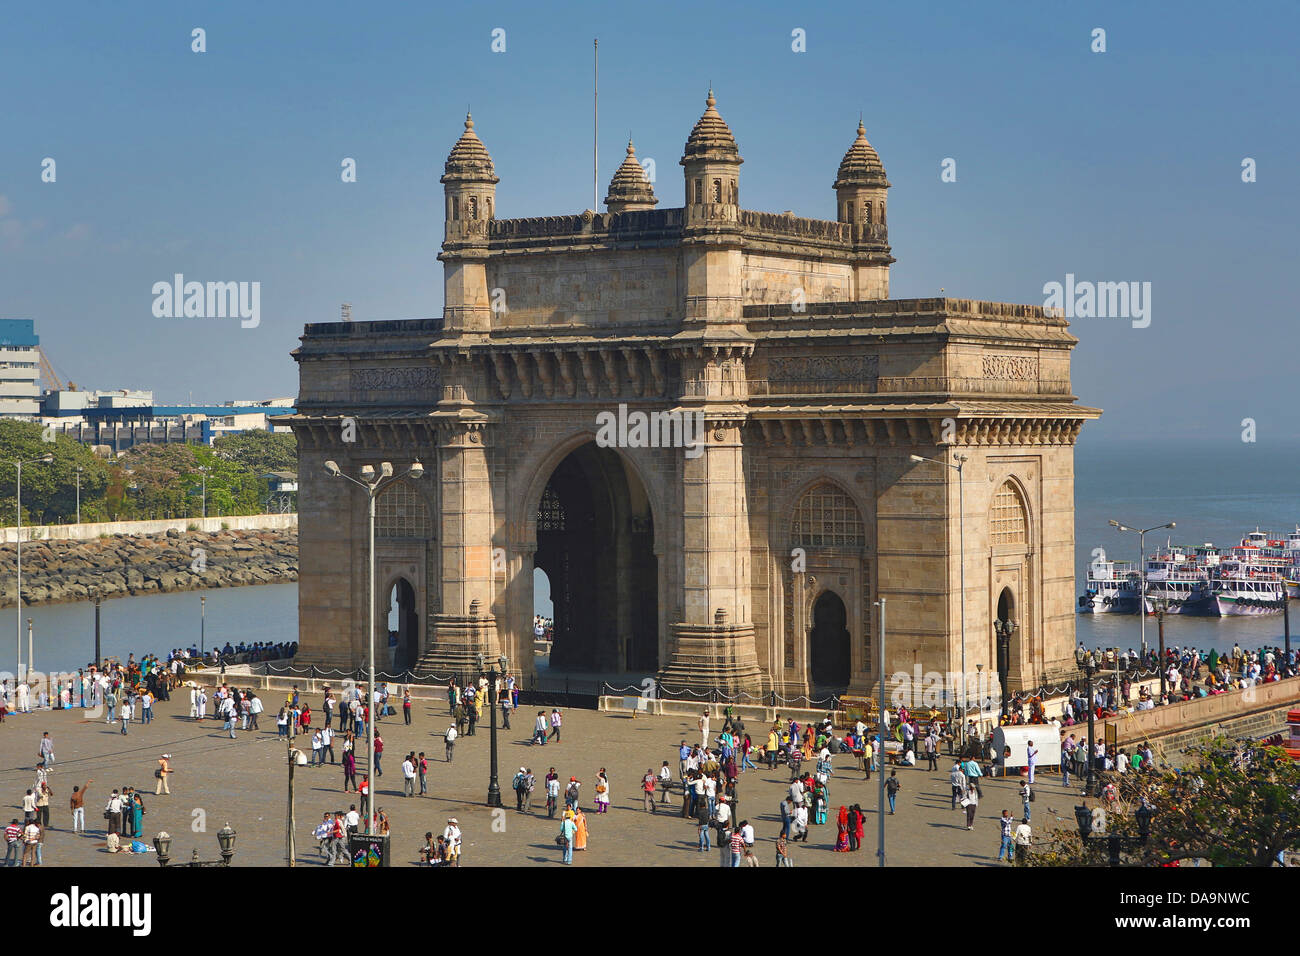 city mumbai bombay Location and history located on the west coast of india, the group of islands which has grown into the city of mumbai, was probably first recorded as the home of fisherfolk where a group of buddhist monks established an outpost late during the magadhan empire the islands were tossed from one king to another emperor.